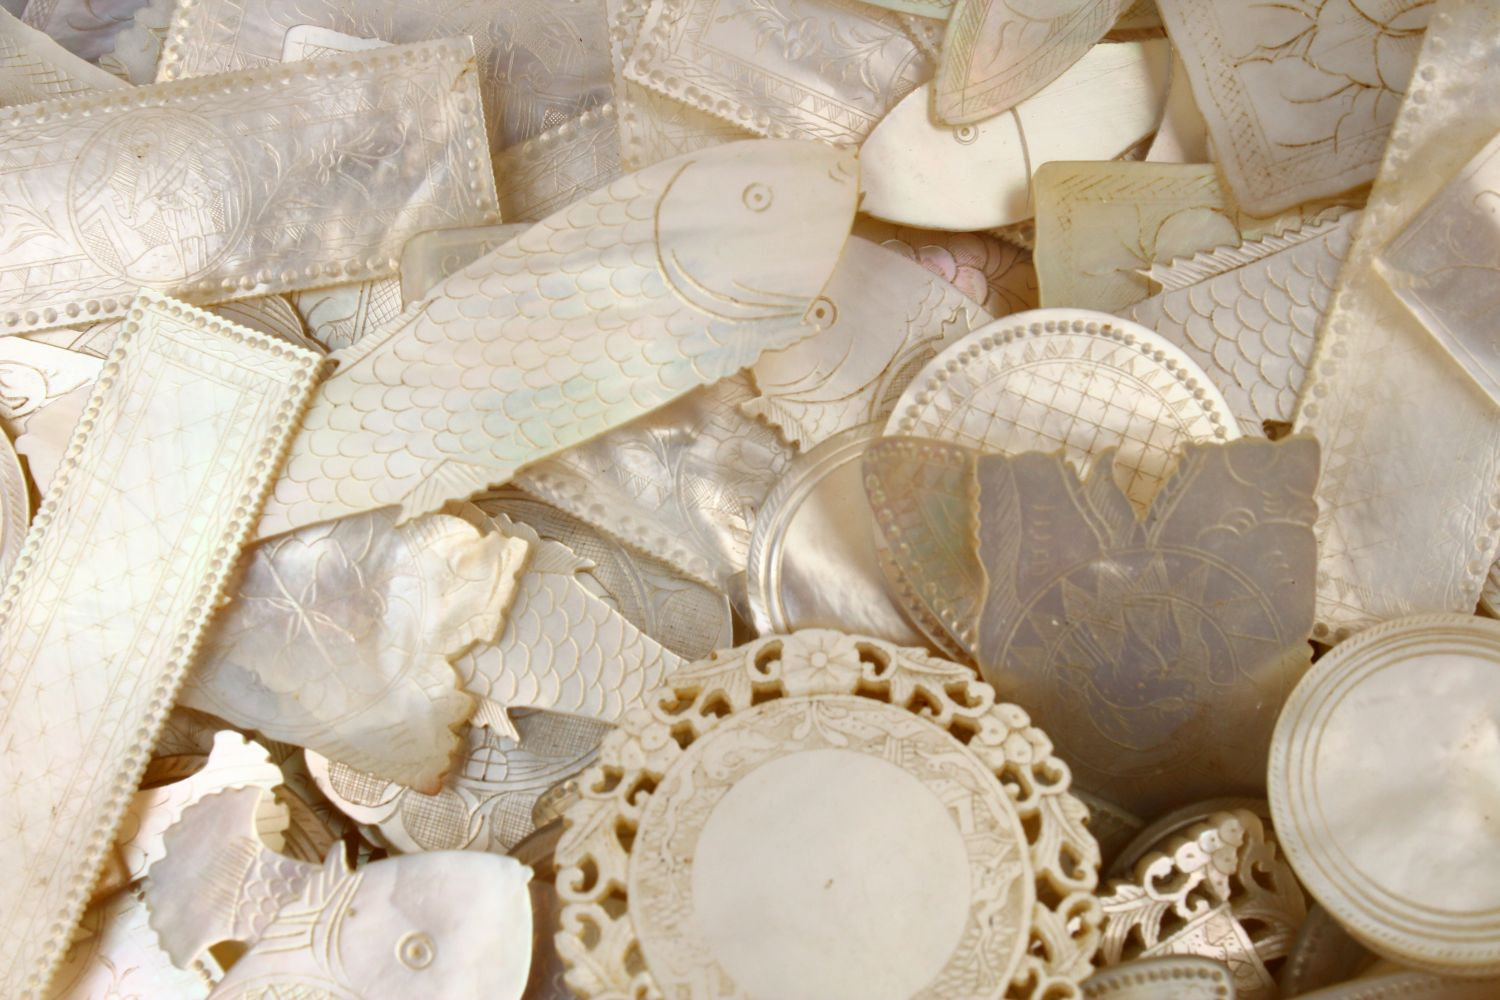 A QUANTITY OF 19TH CENTURY CHINESE CARVED MOTHER OF PEARL GAME COUNTERS, various styles an sizes. - Image 4 of 9